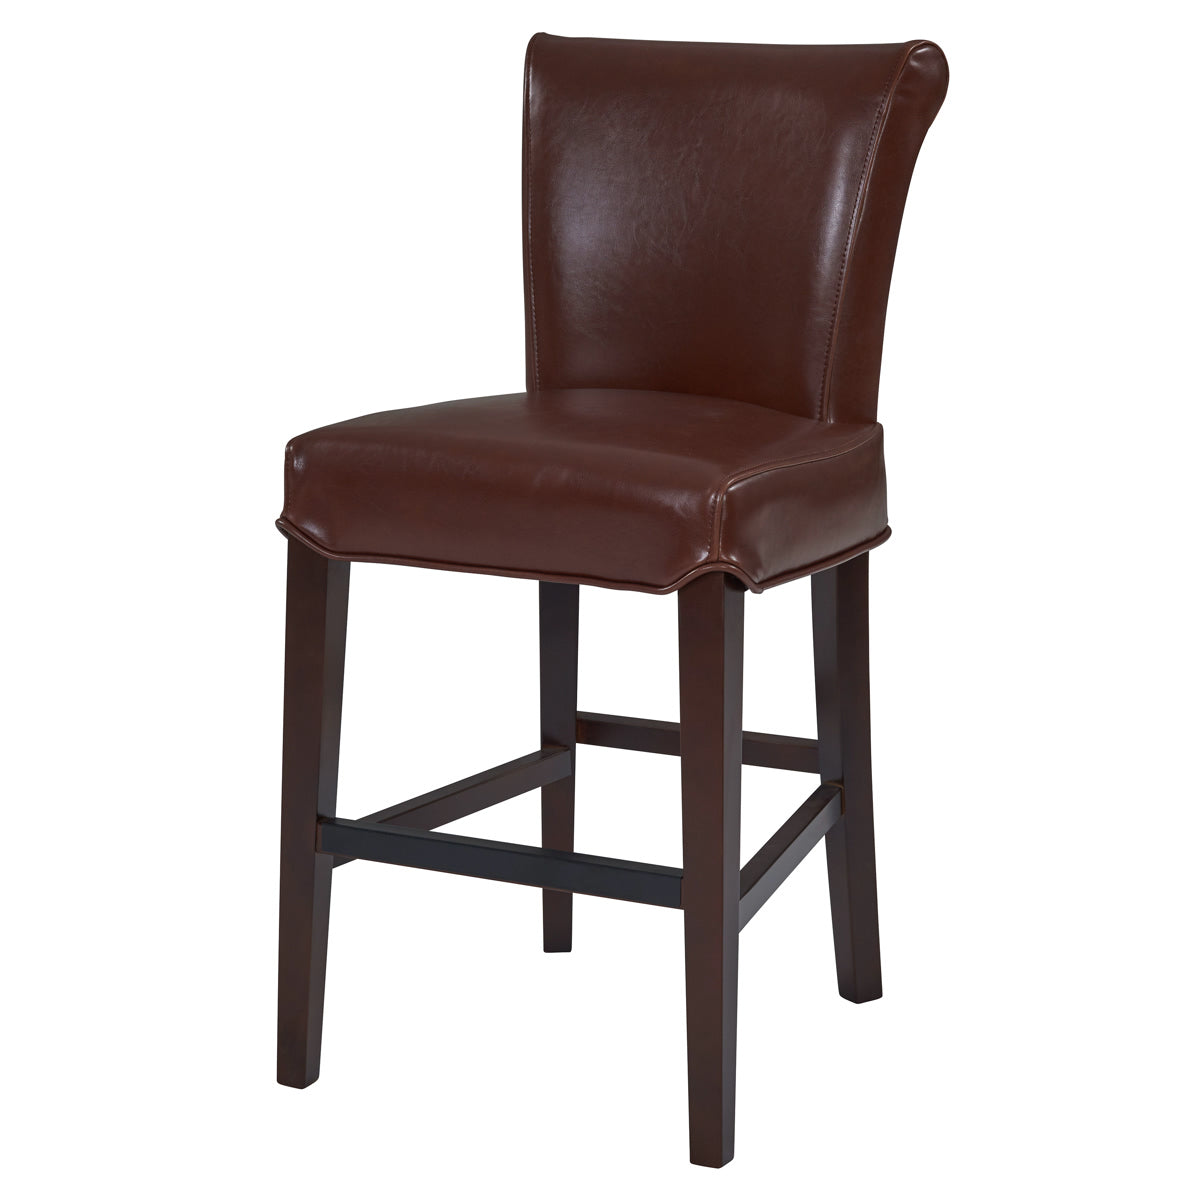 Bentley Bicast Leather Bar Stool by New Pacific Direct - 1485